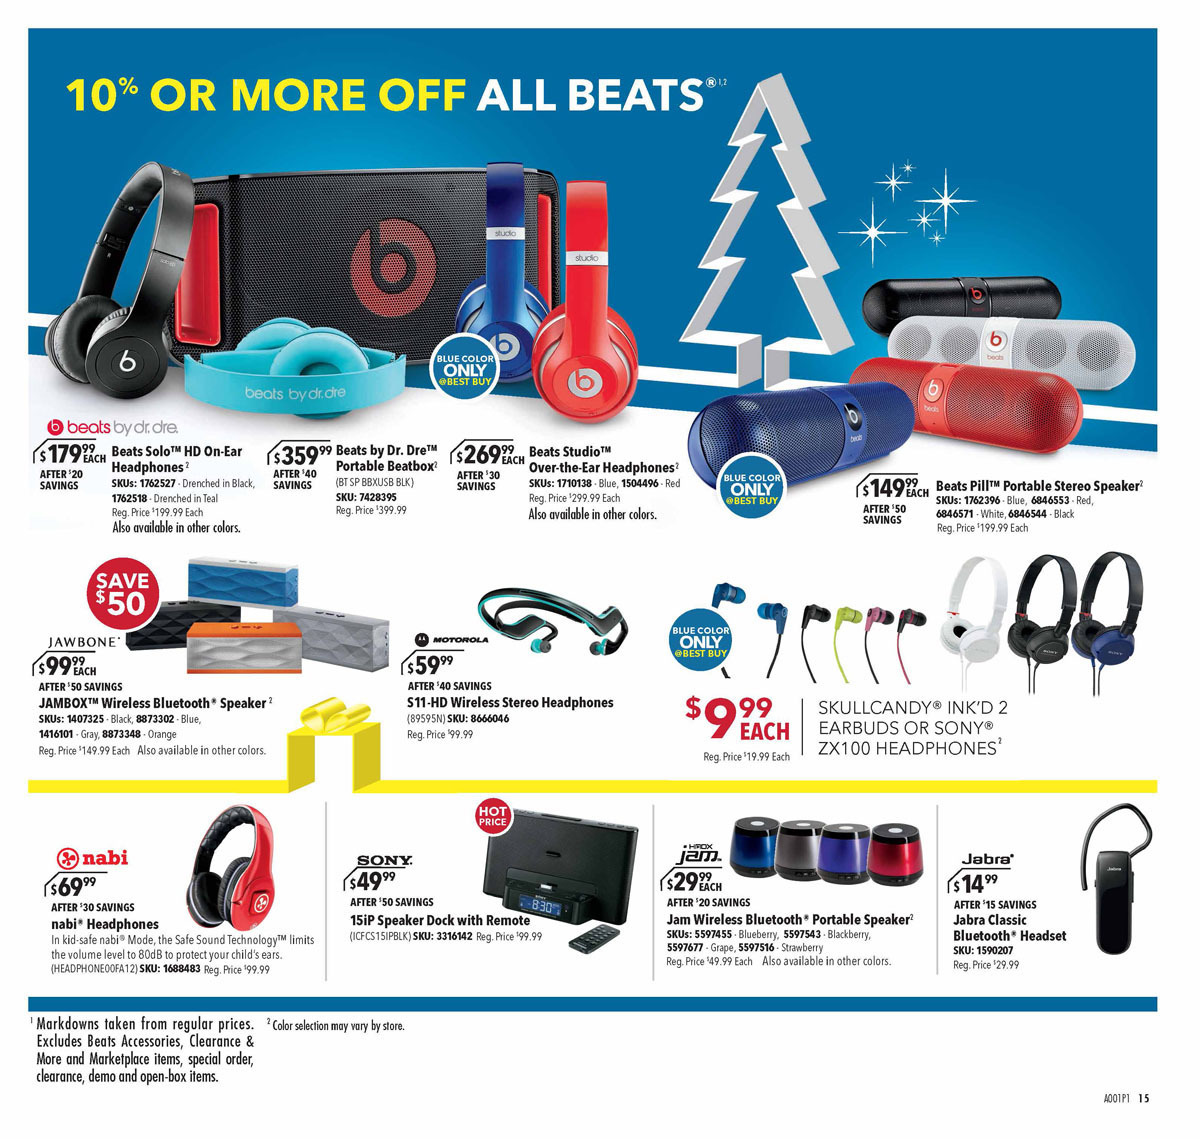 BestBuy_blackfriday2013_15